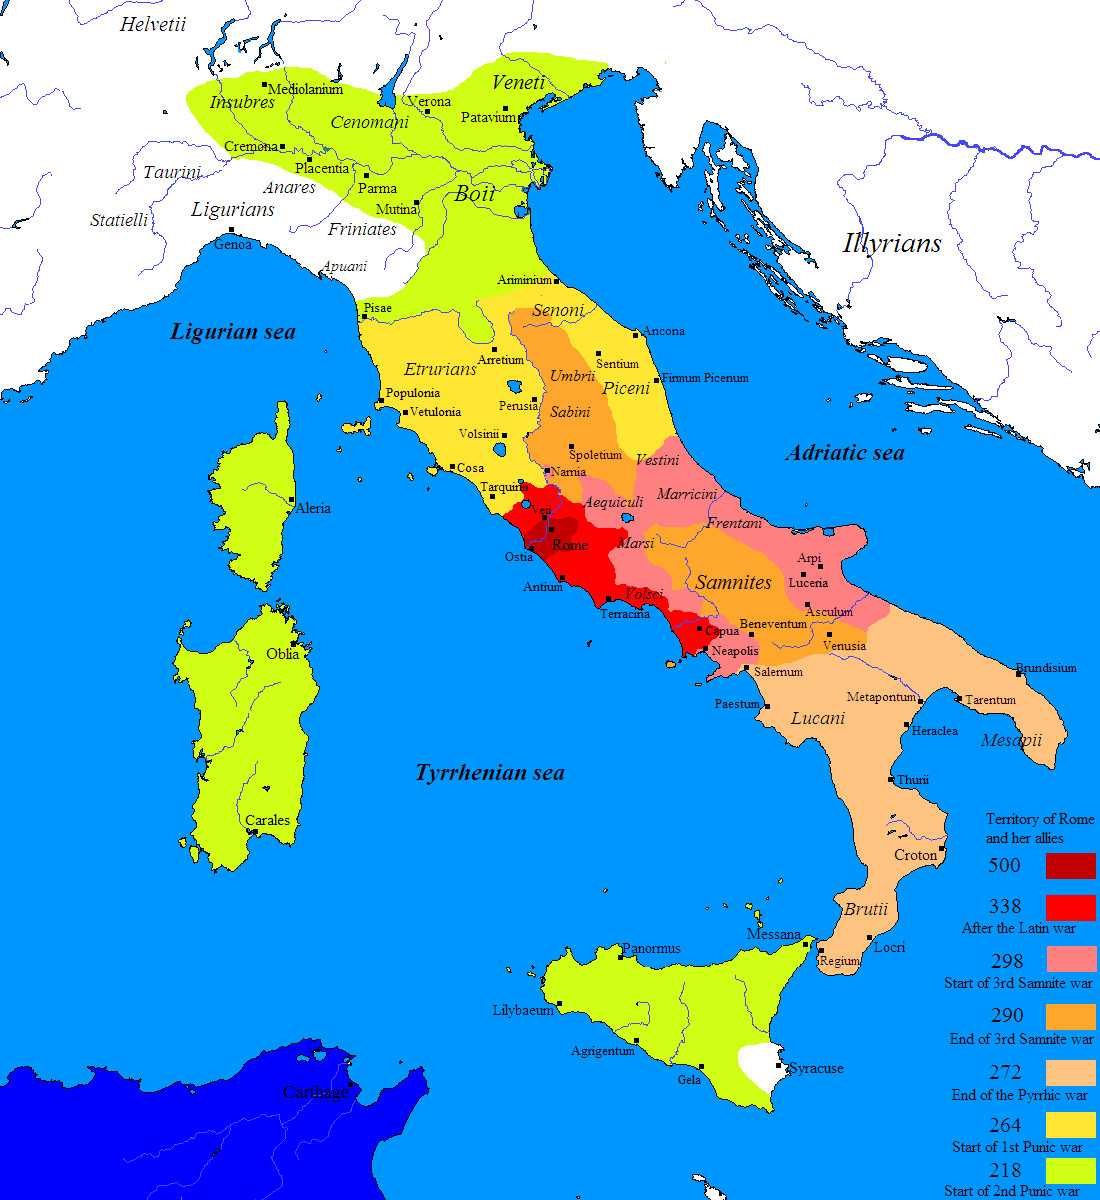 Late Roman Empire Map.The Roman Empire Explained In 40 Maps Vox